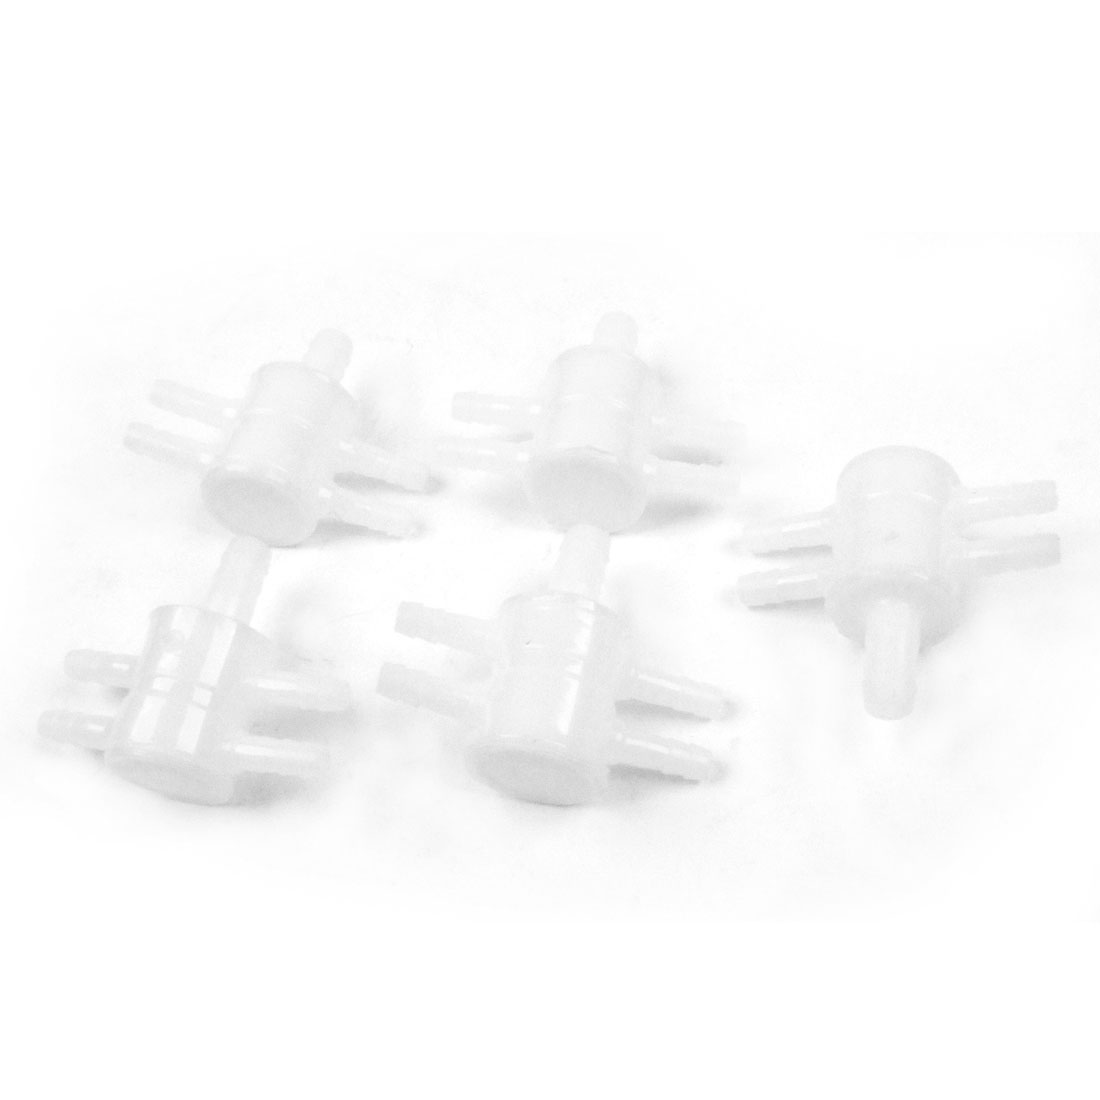 5 Pcs 5mm Tube Dia 4 Way Water Air Flow Control Valve for Aquarium Fish Tank